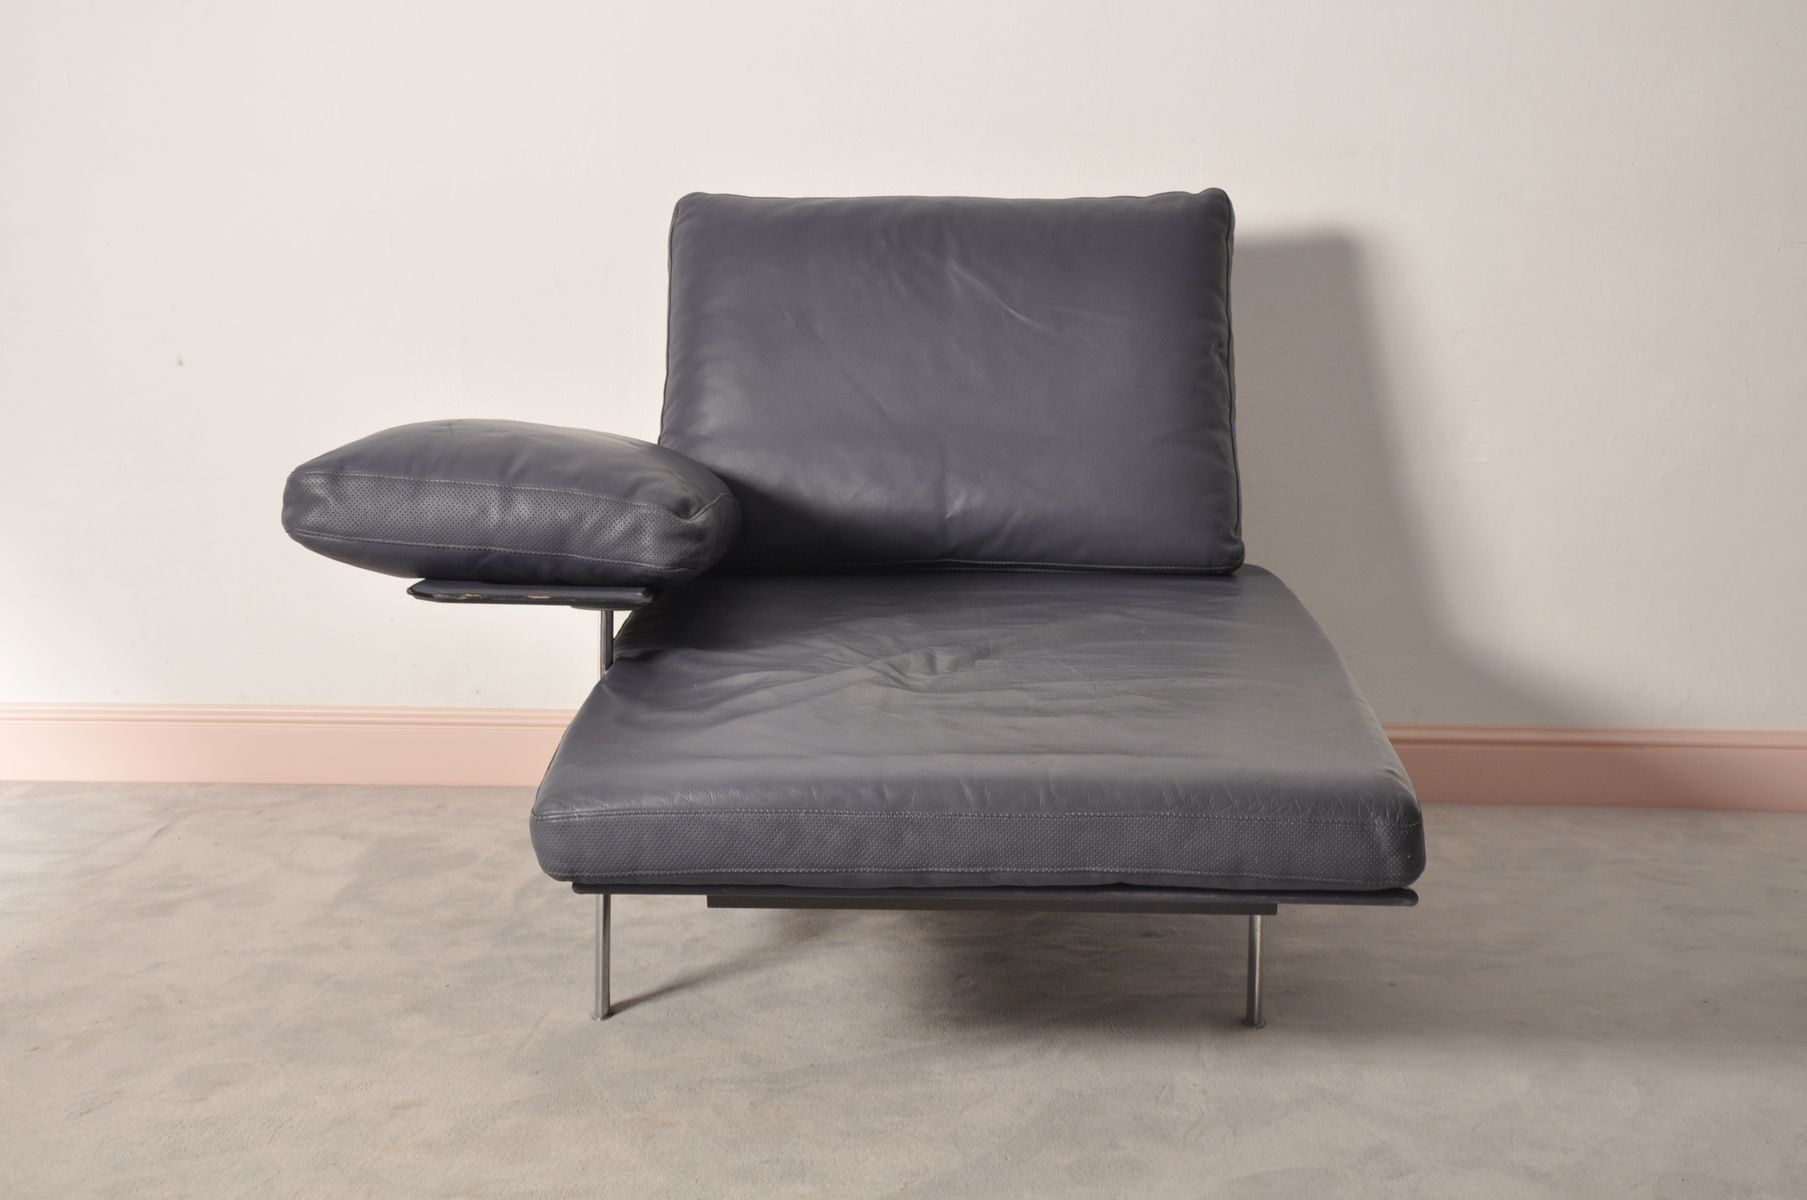 Diesis chaise longue by paolo nava antonio citterio for for Chaise longue france